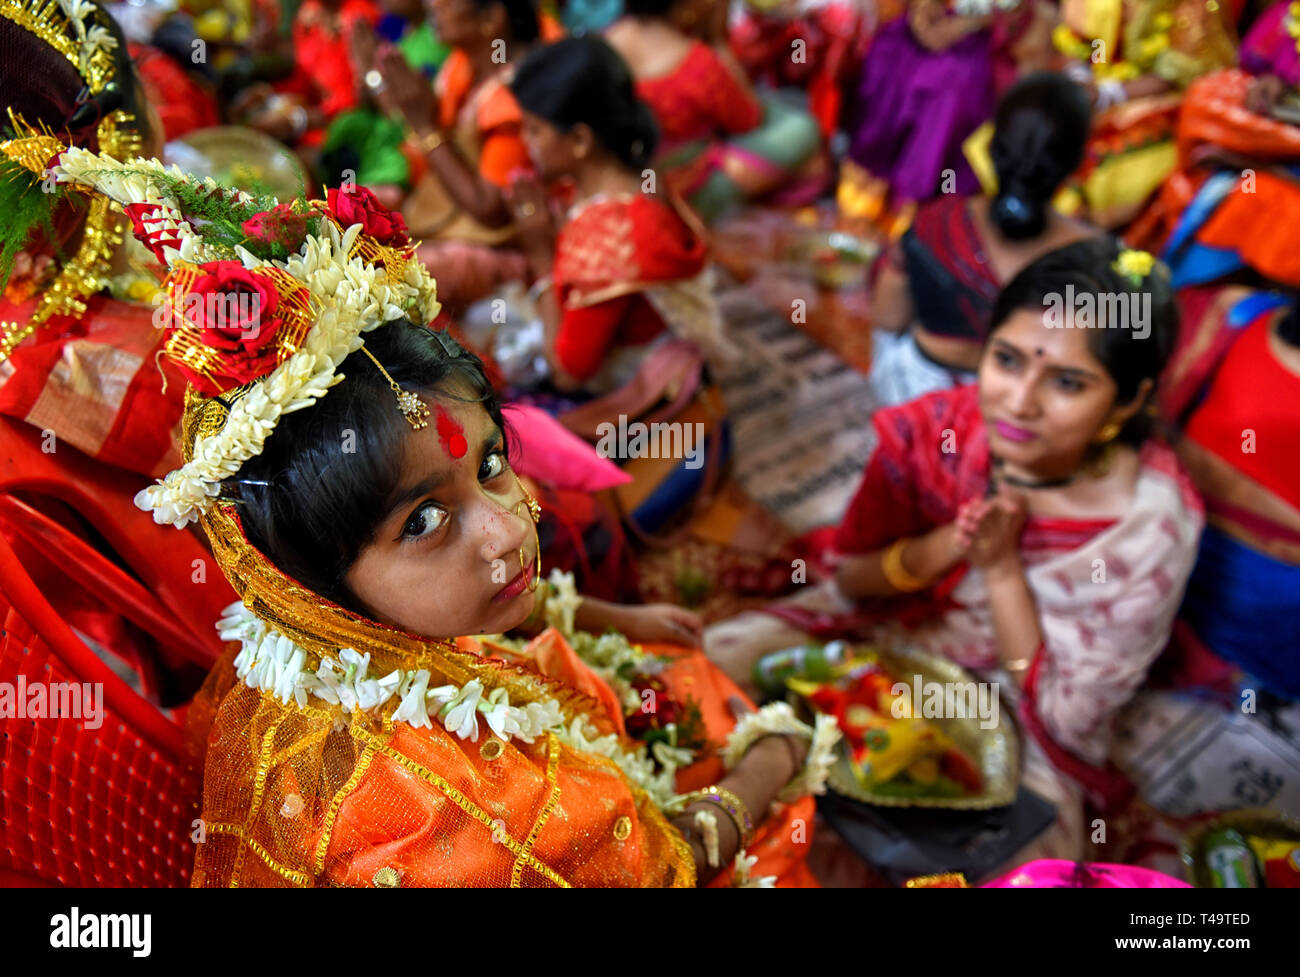 Kolkata, WEST BENGAL, India  14th Apr, 2019  Young girls are